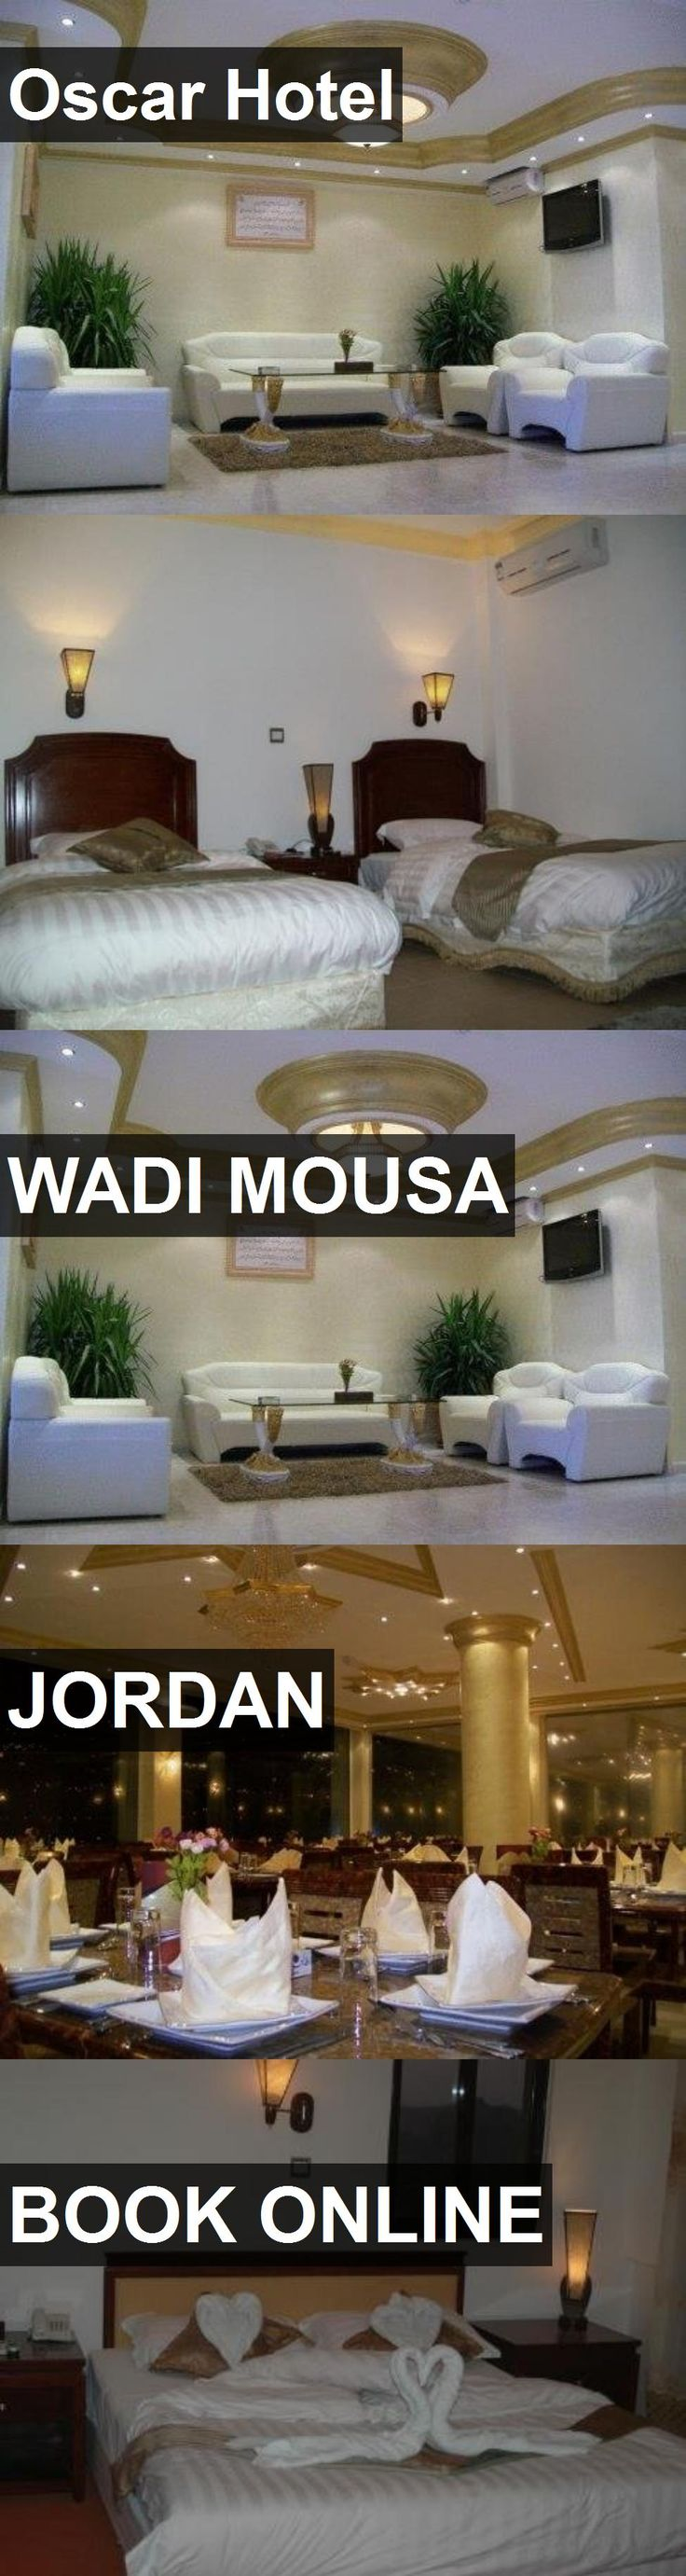 Oscar Hotel in Wadi Mousa, Jordan. For more information, photos, reviews and best prices please follow the link. #Jordan #WadiMousa #travel #vacation #hotel